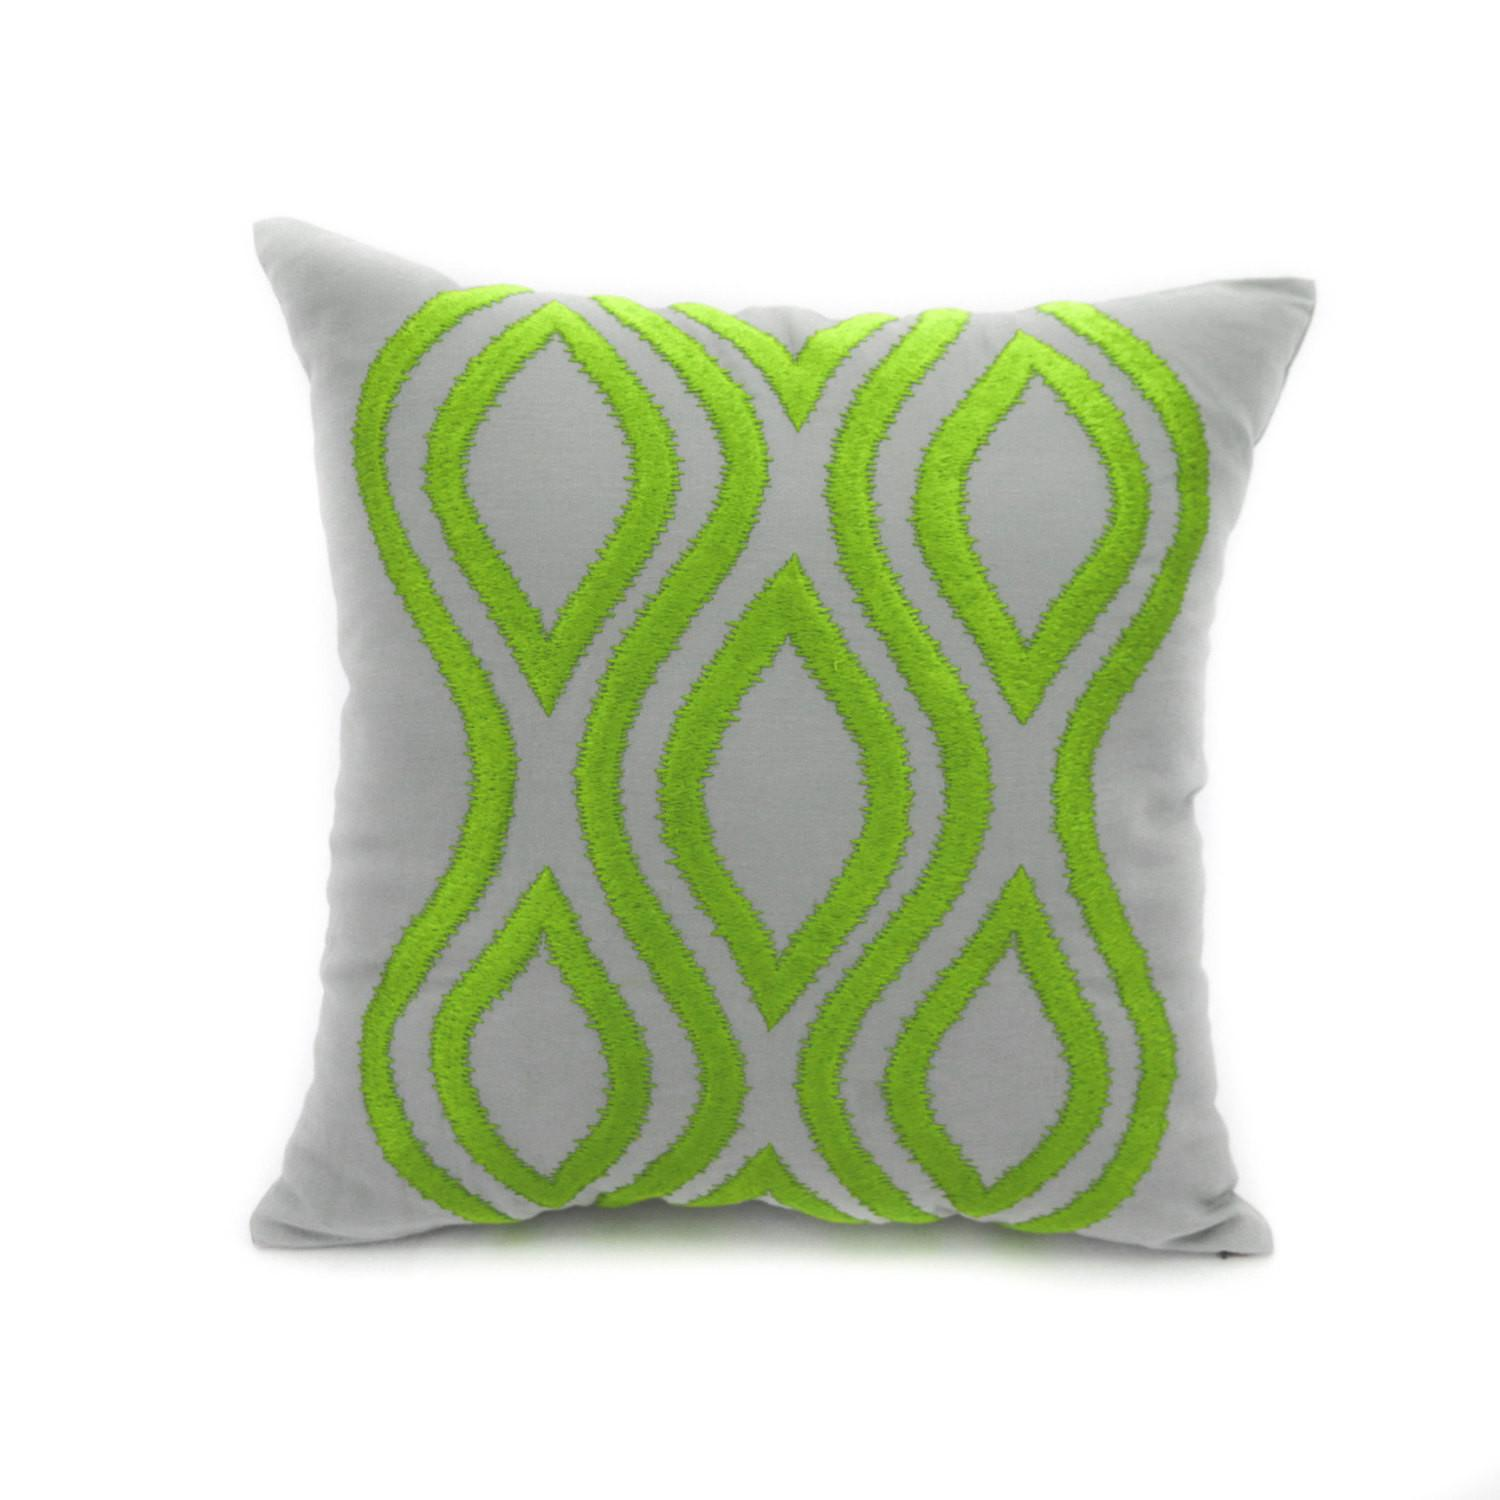 Ikat Pillow Cover Throw Decorative Gray